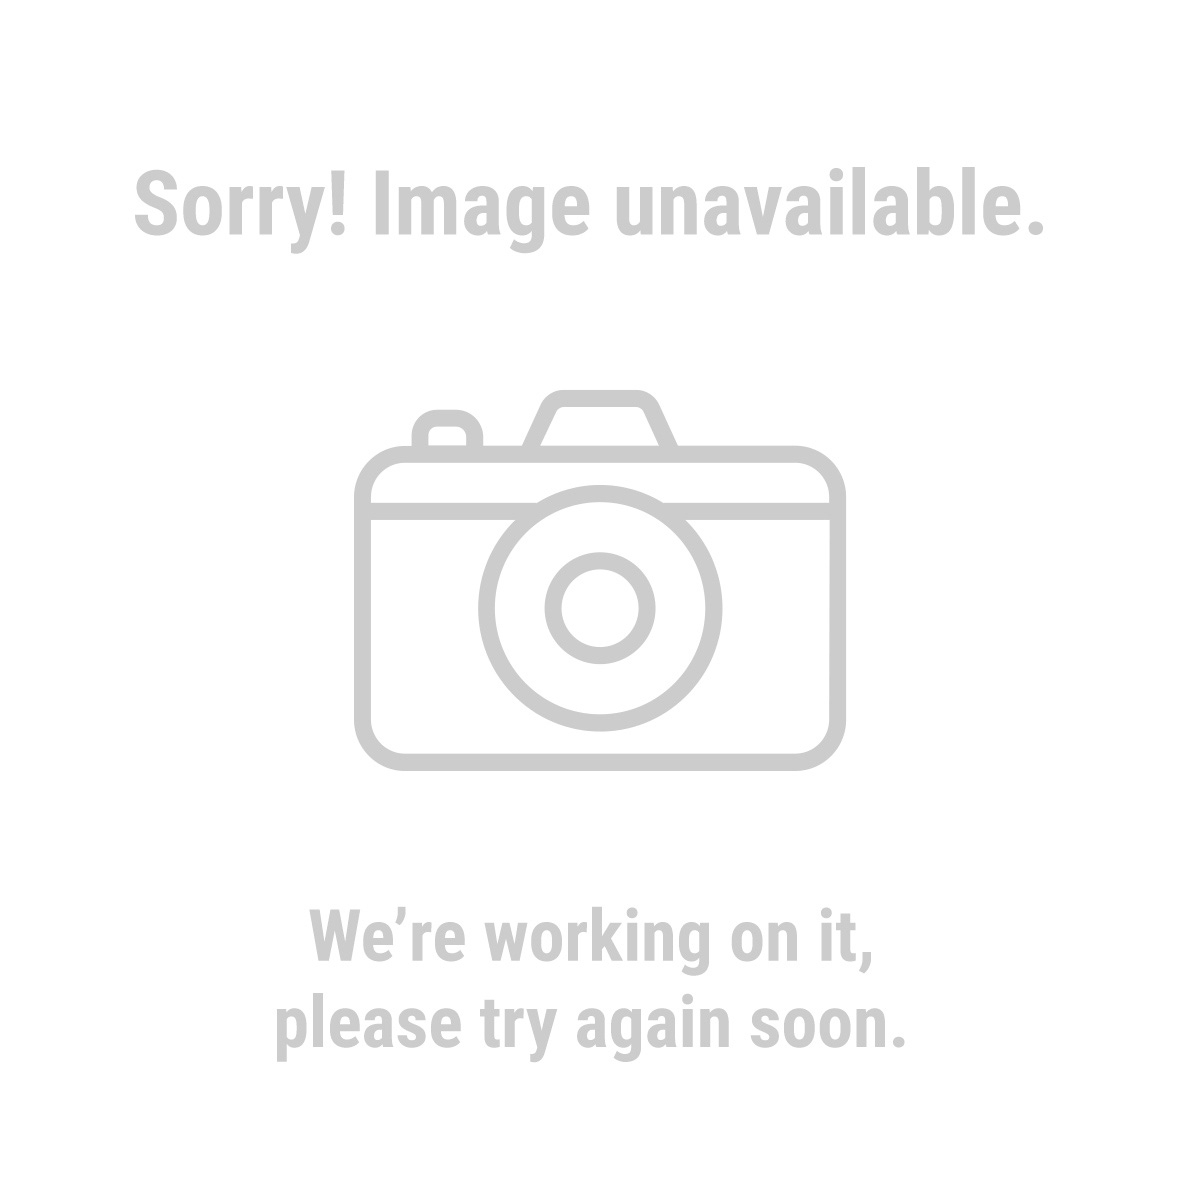 Storehouse 45057 350 Piece Cable Tie Assortment